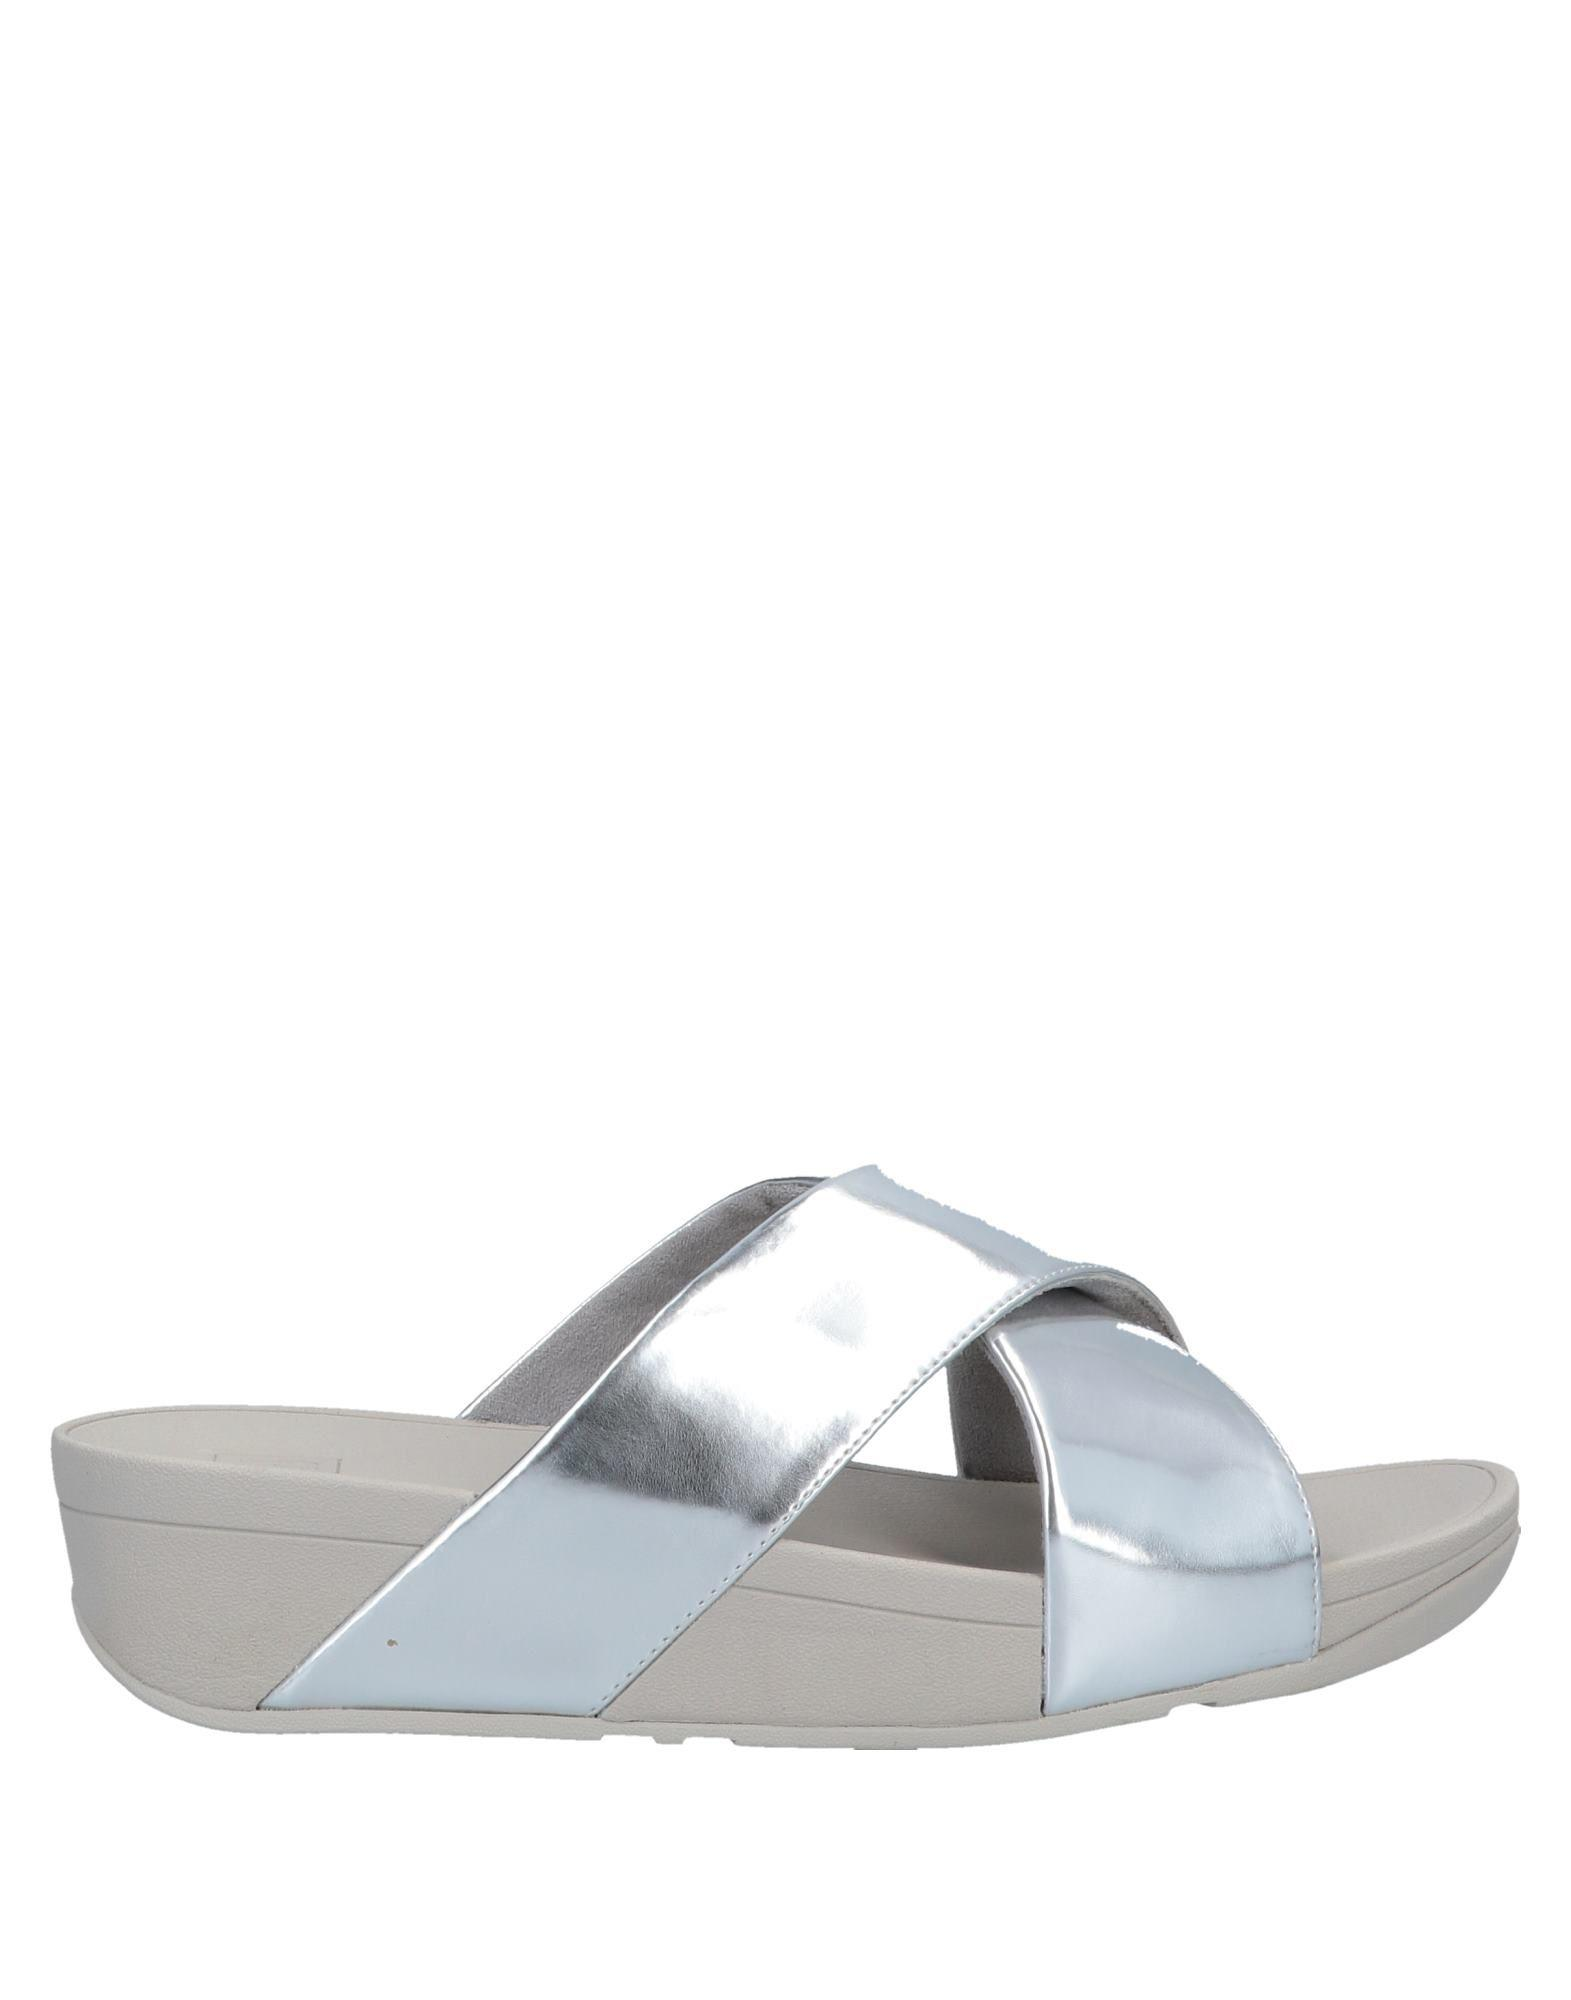 b21c8d76dcdf13 Lyst - Fitflop Sandals in Metallic